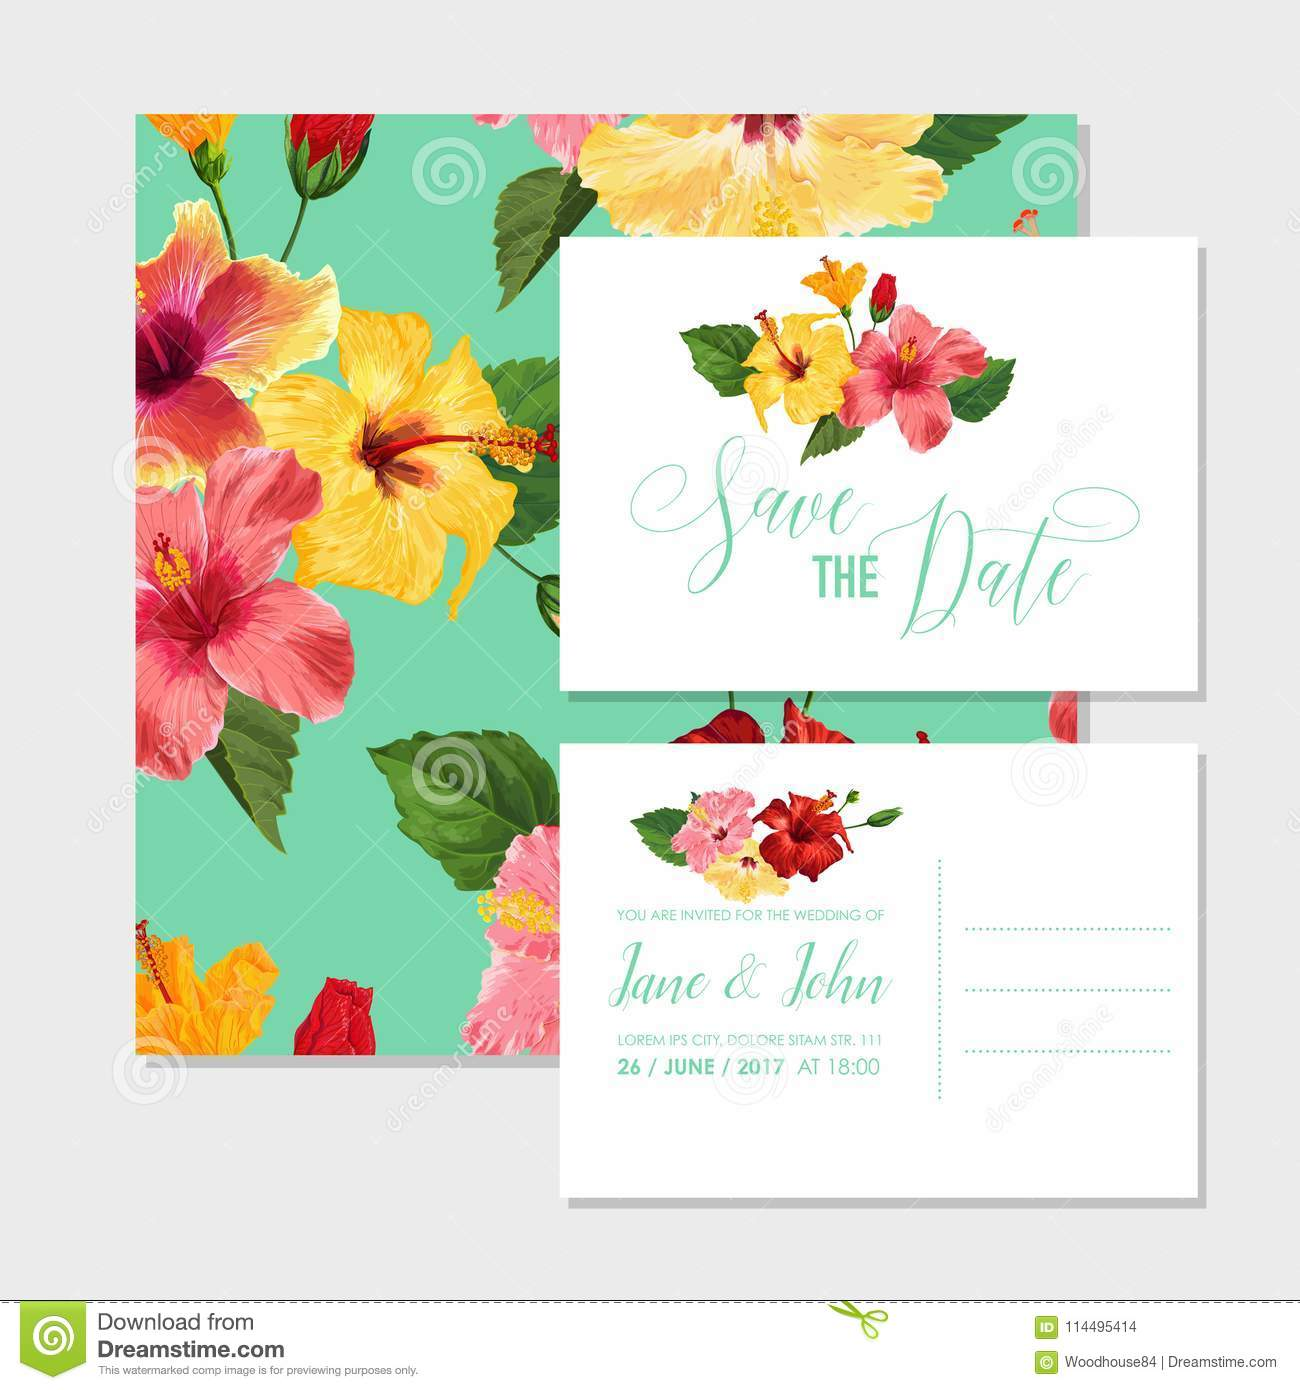 Wedding invitation template with red hibiscus flowers save the date wedding invitation template with red hibiscus flowers save the date floral card for greetings anniversary birthday baby shower party botanical design stopboris Images